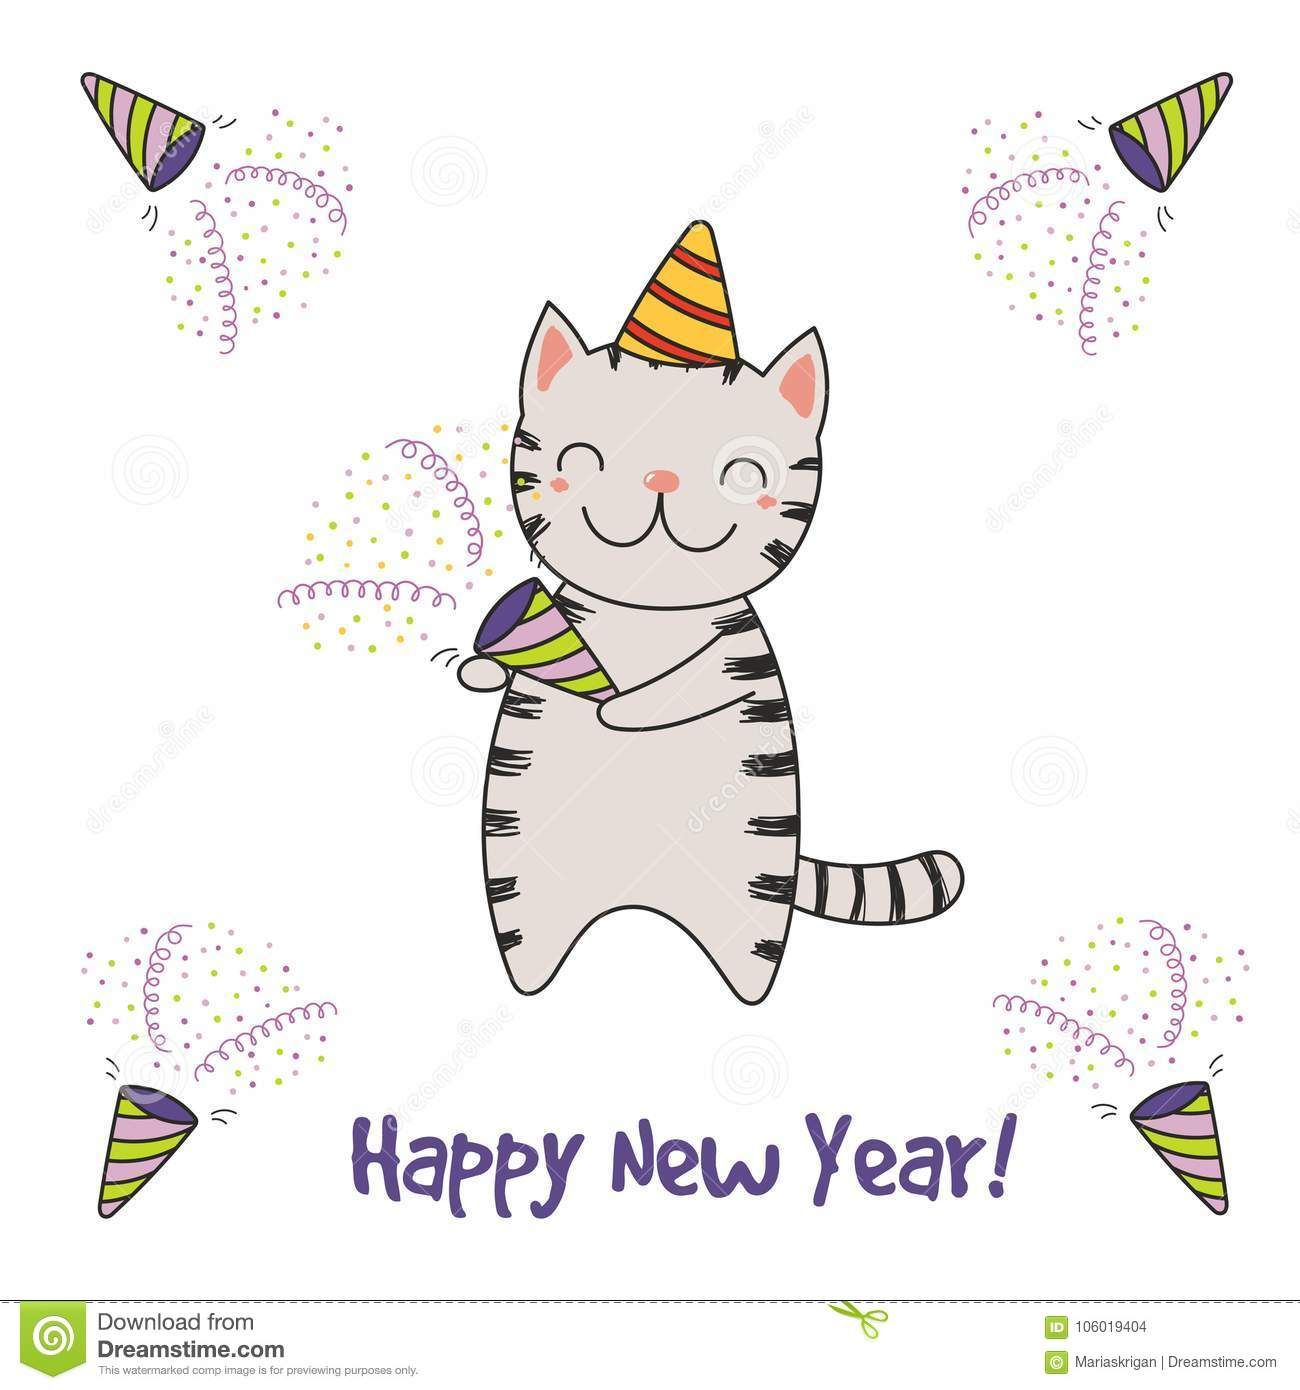 Hand Drawn Happy New Year Greeting Card Happy New Year Greetings New Year Greetings New Year Greeting Cards